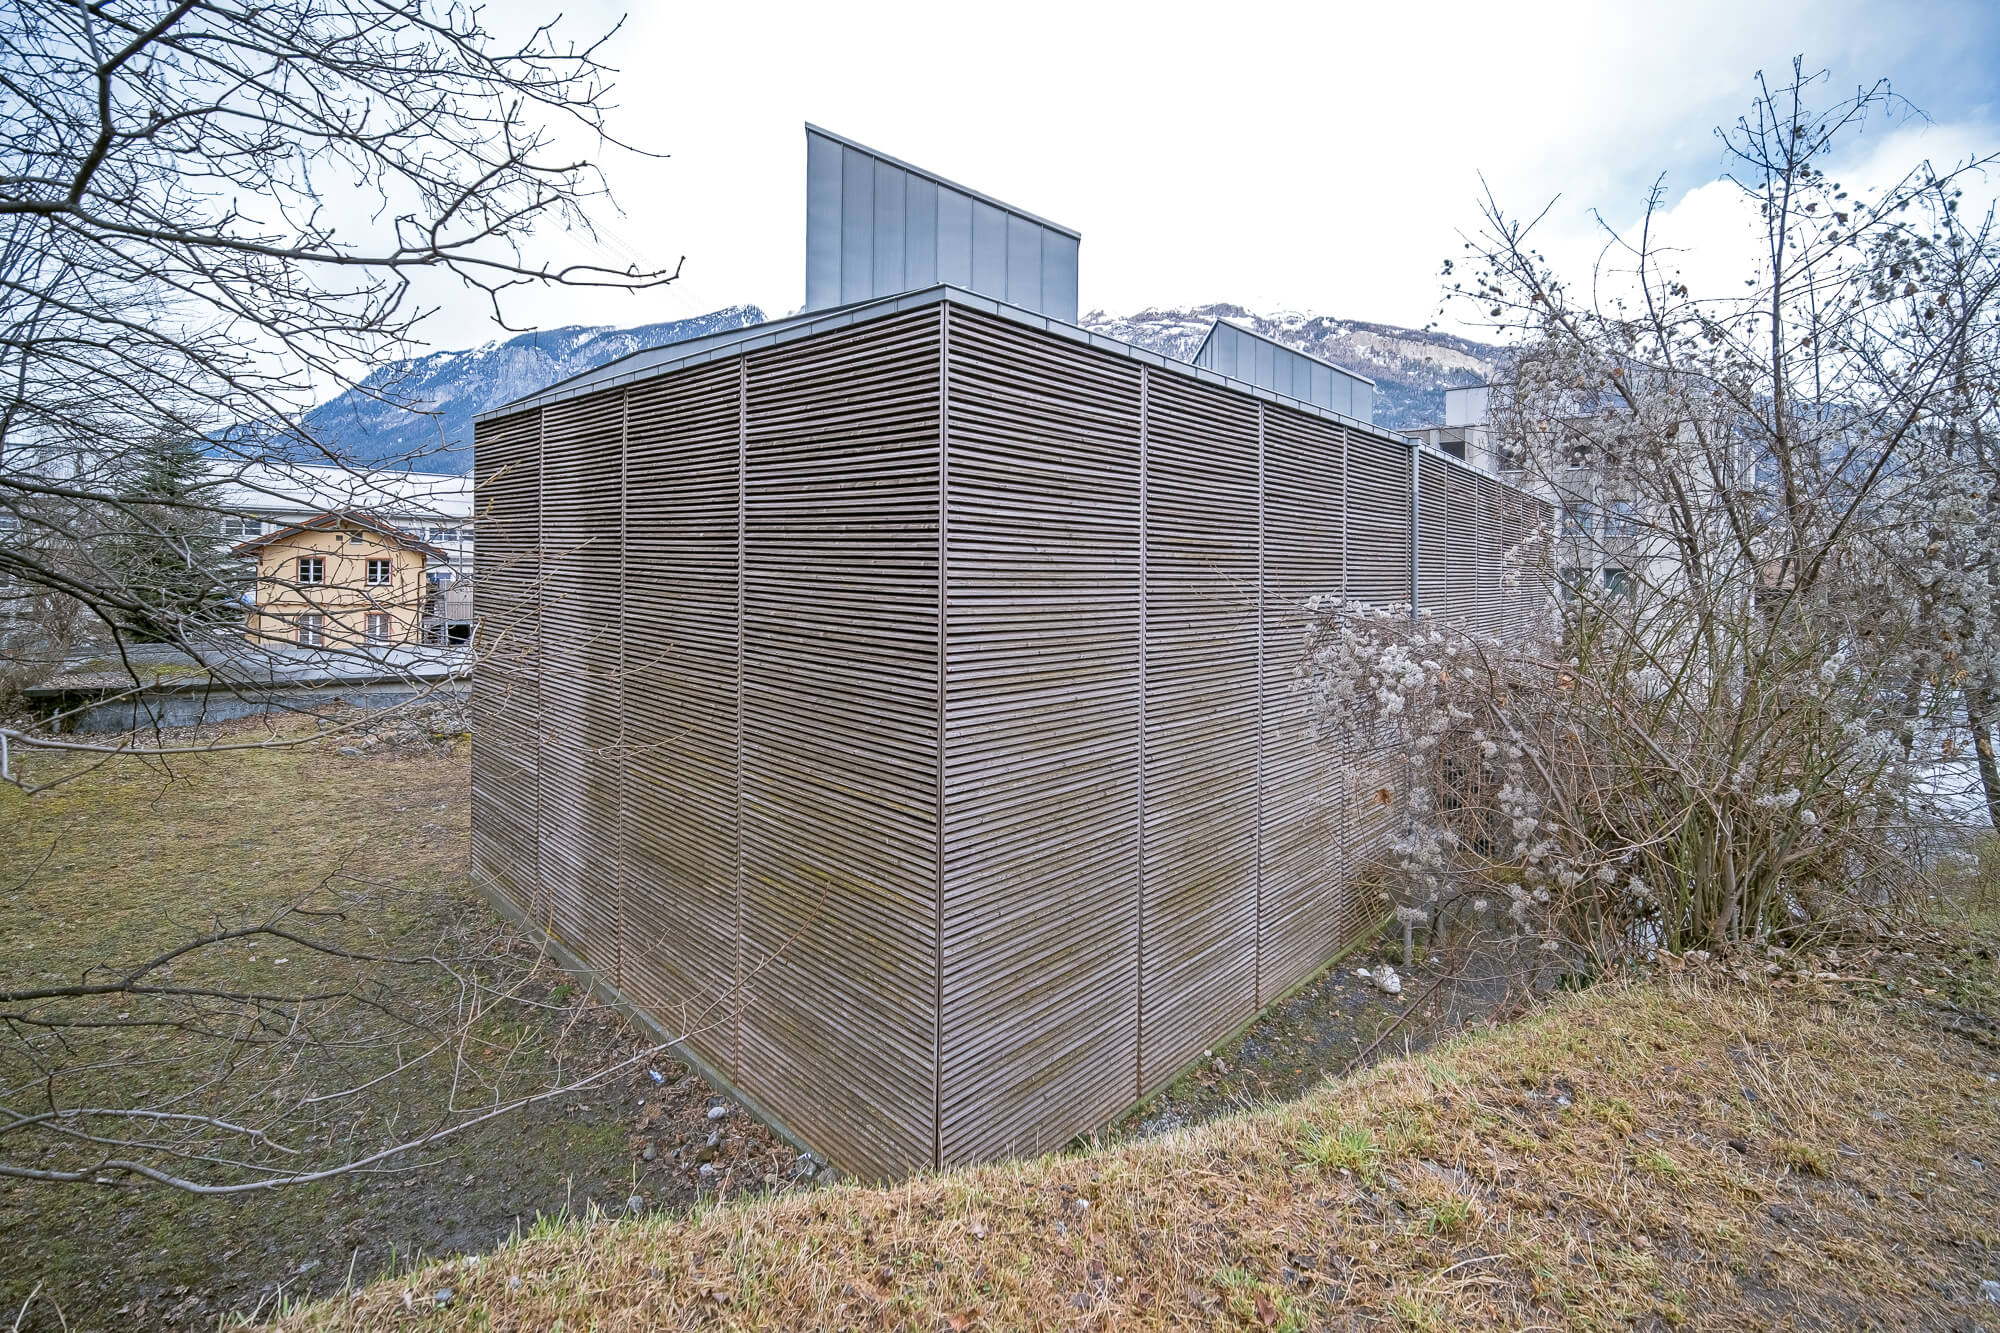 Zumthor Roman Archaeological Site in Chur, Switzerland